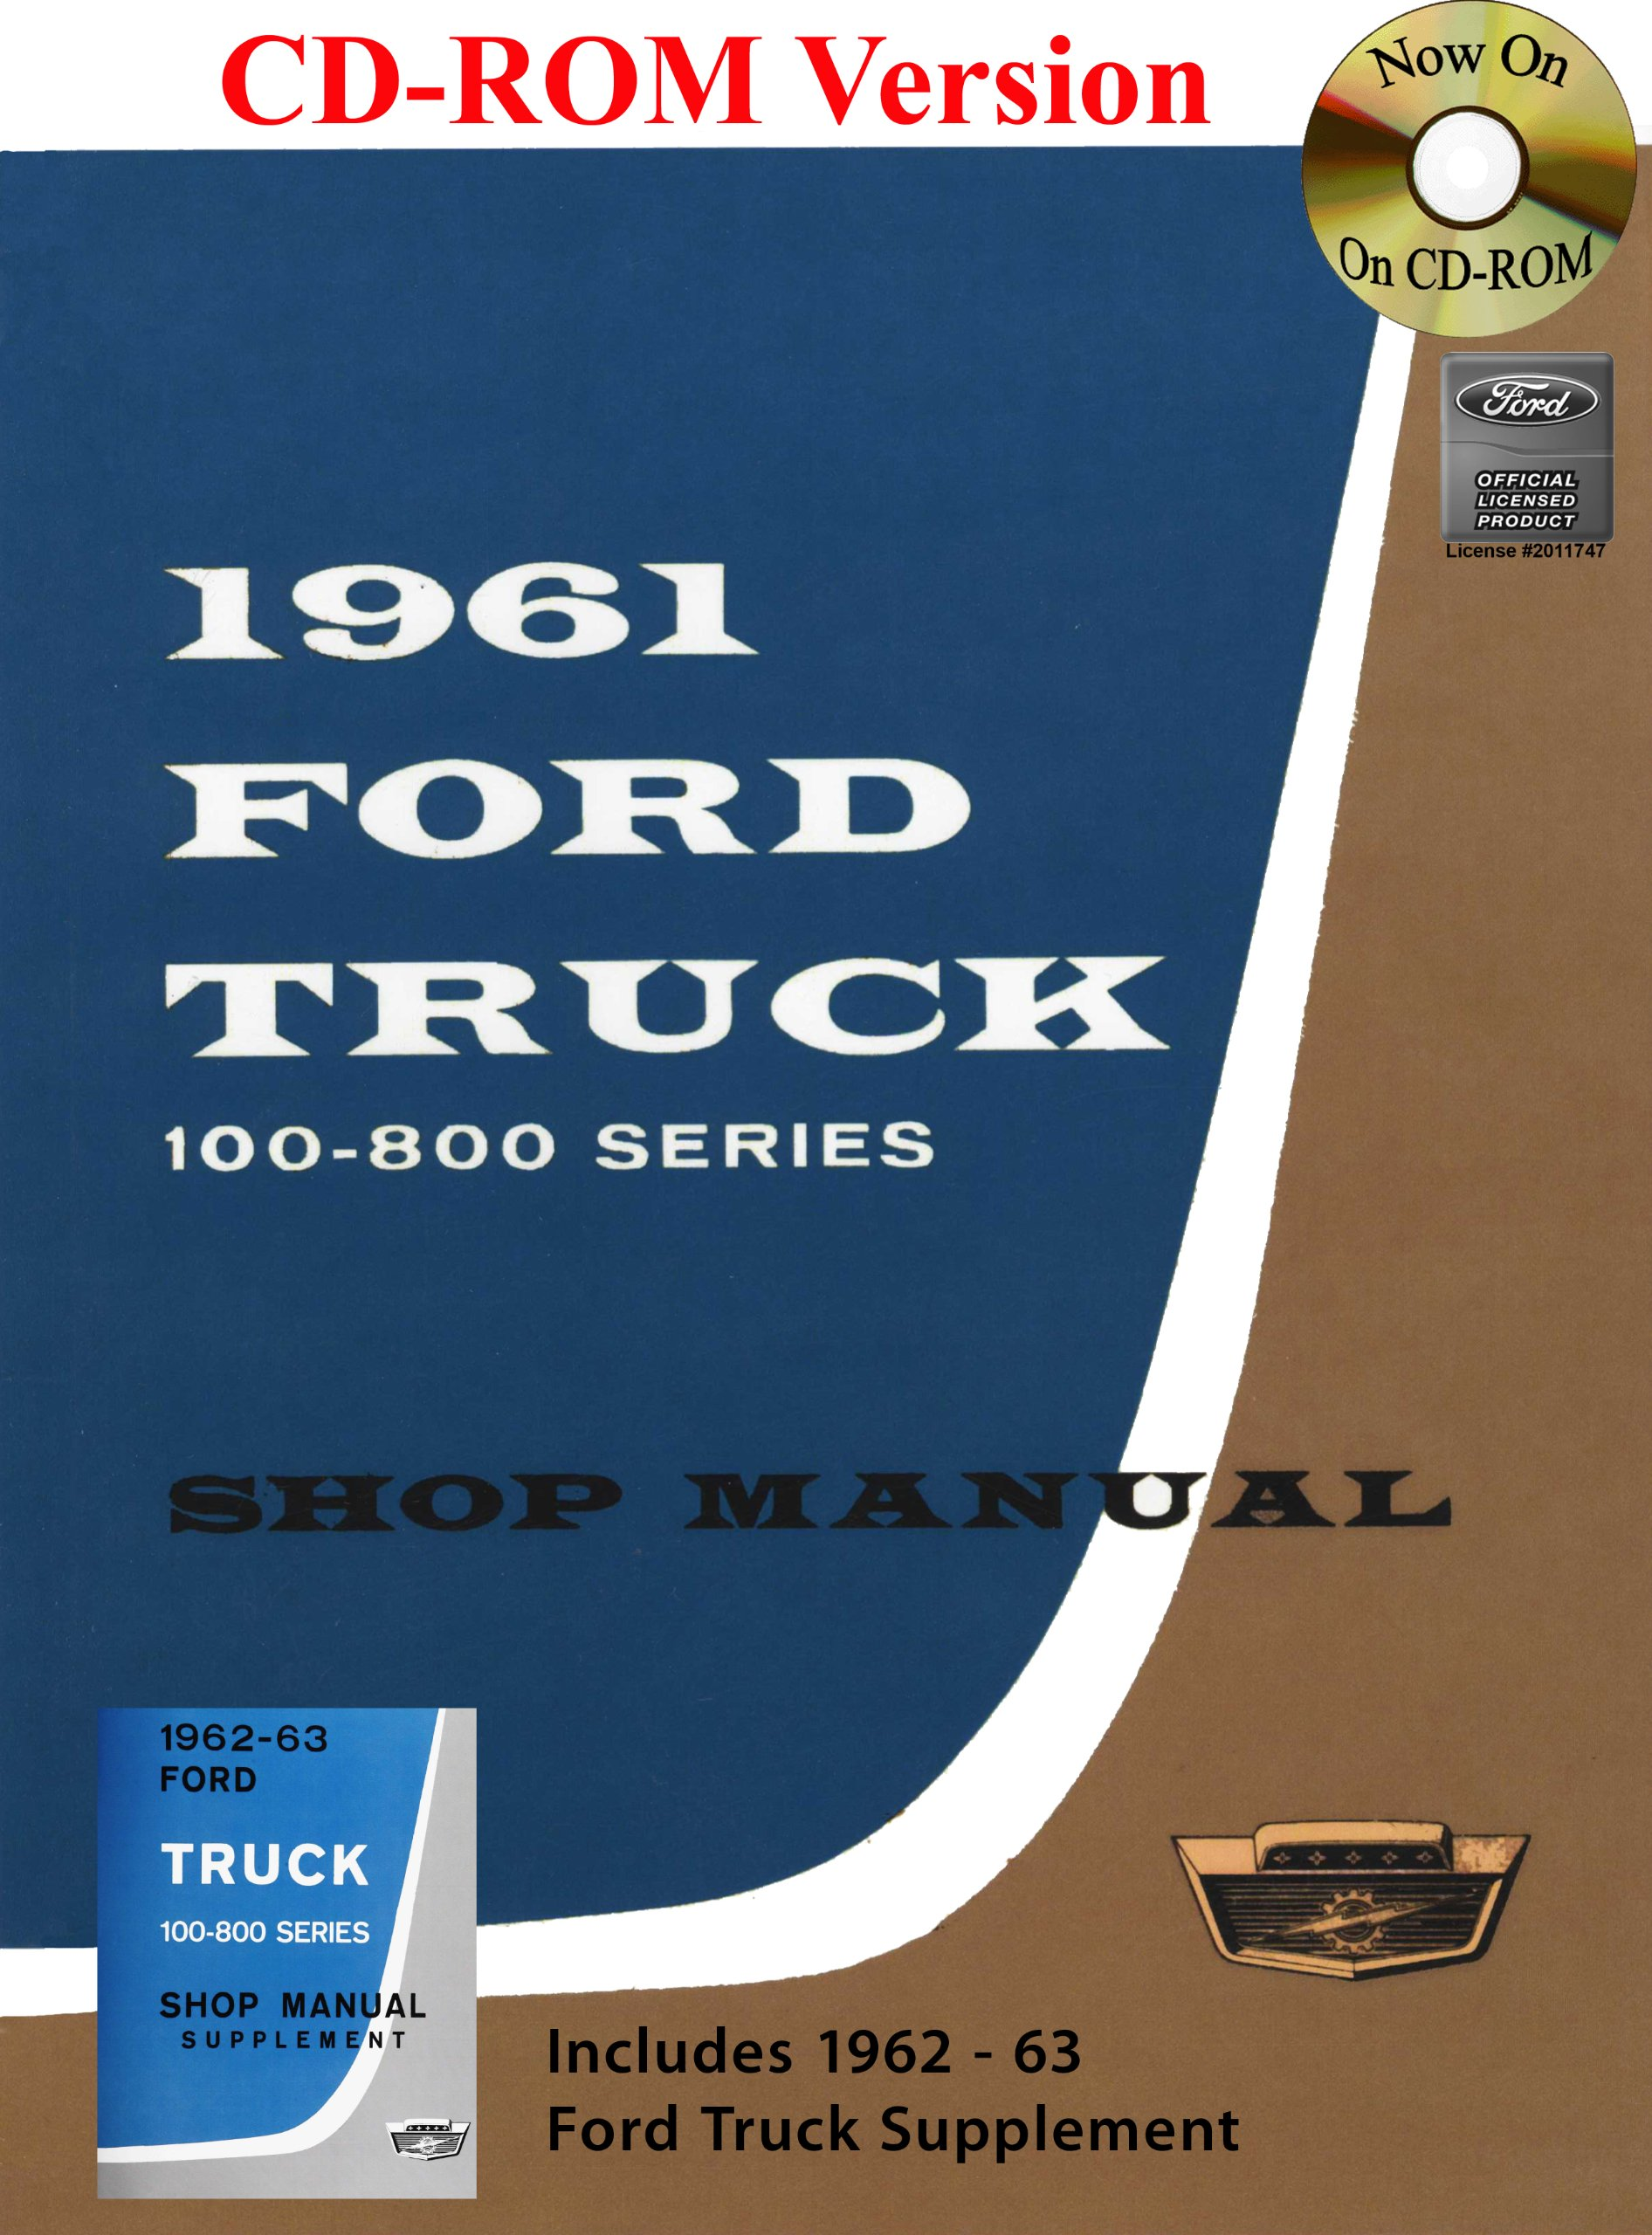 1961-63 Ford Truck Shop Manual: Ford Motor Company, David E. LeBlanc:  9781603710701: Amazon.com: Books